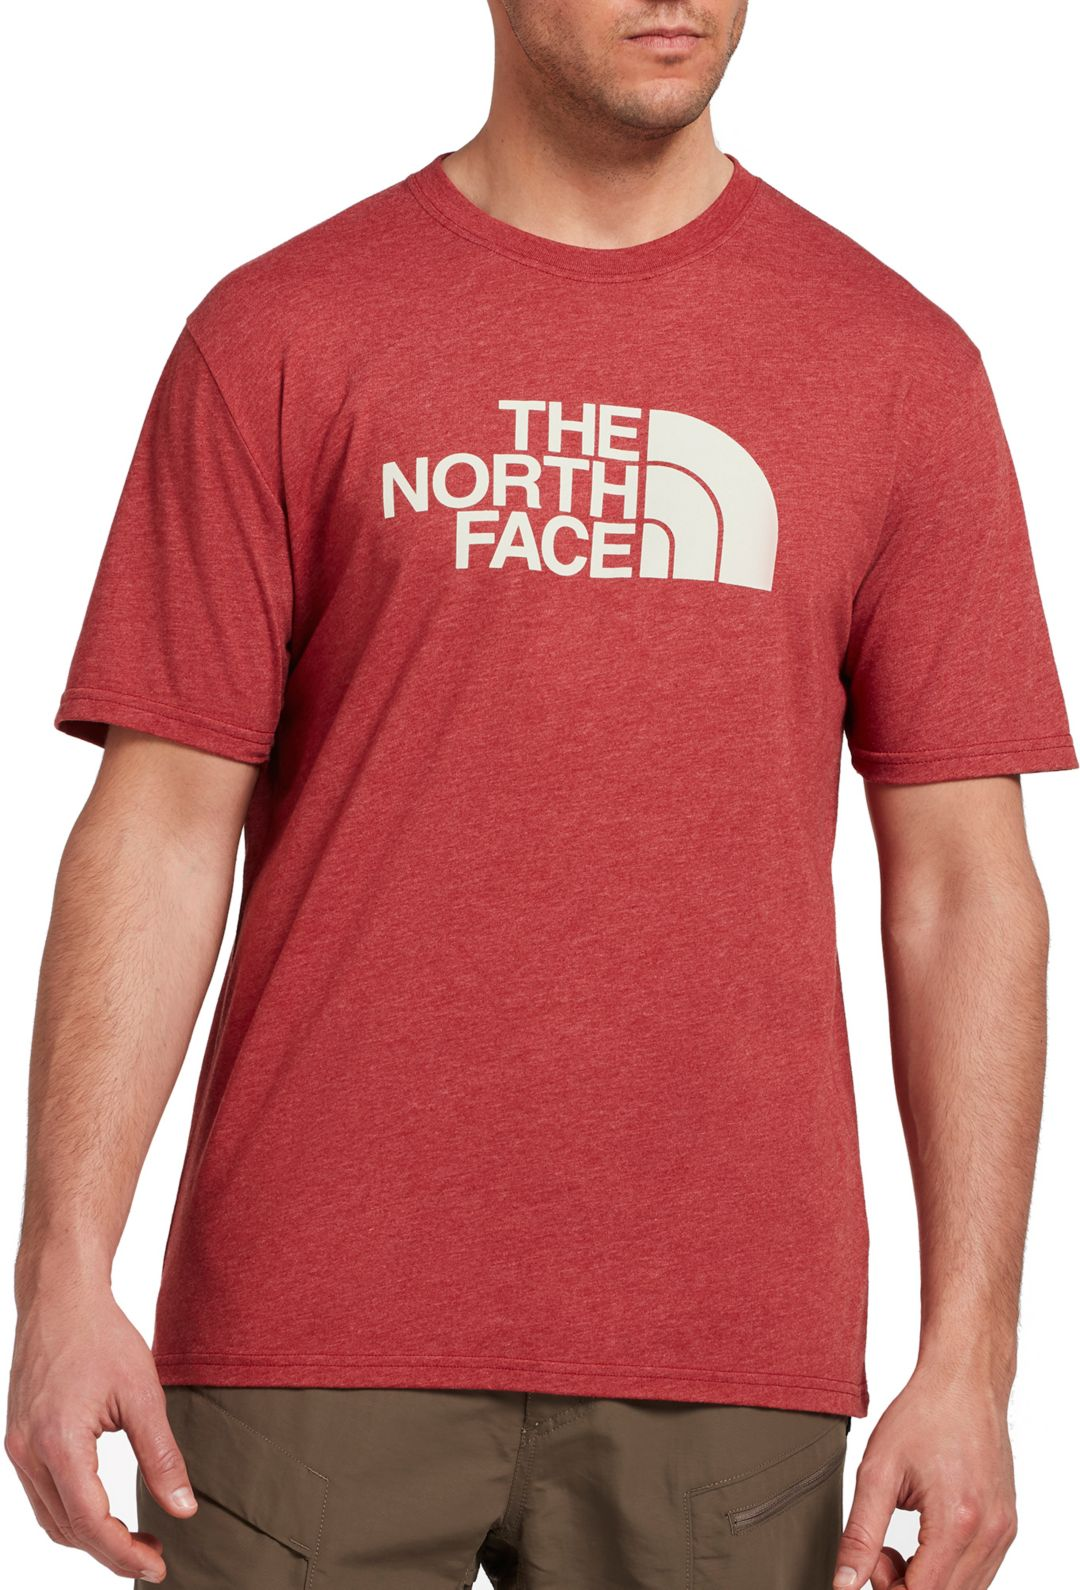 39a36470b The North Face Men's Half Dome T-Shirt